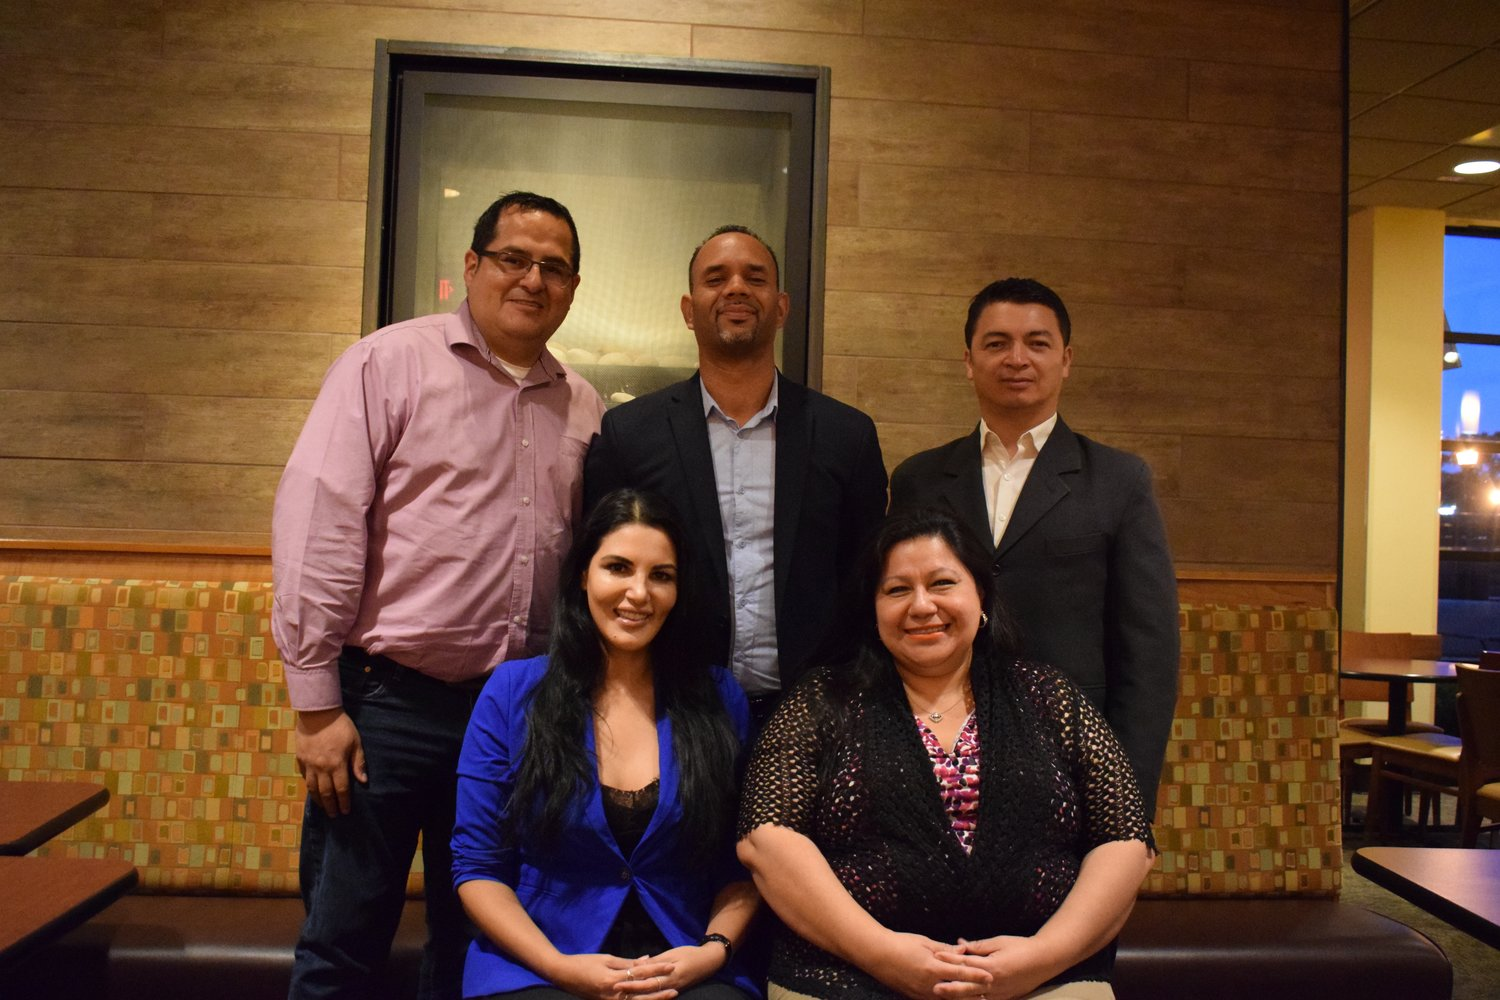 From Top left, James Barron, Gabriel Rodriguez, Ever Padilla, and bottom left, Annie Spiers and Elsa Valle plan to officially debut the North Shore Hispanic Chamber of Commerce of New York in September.